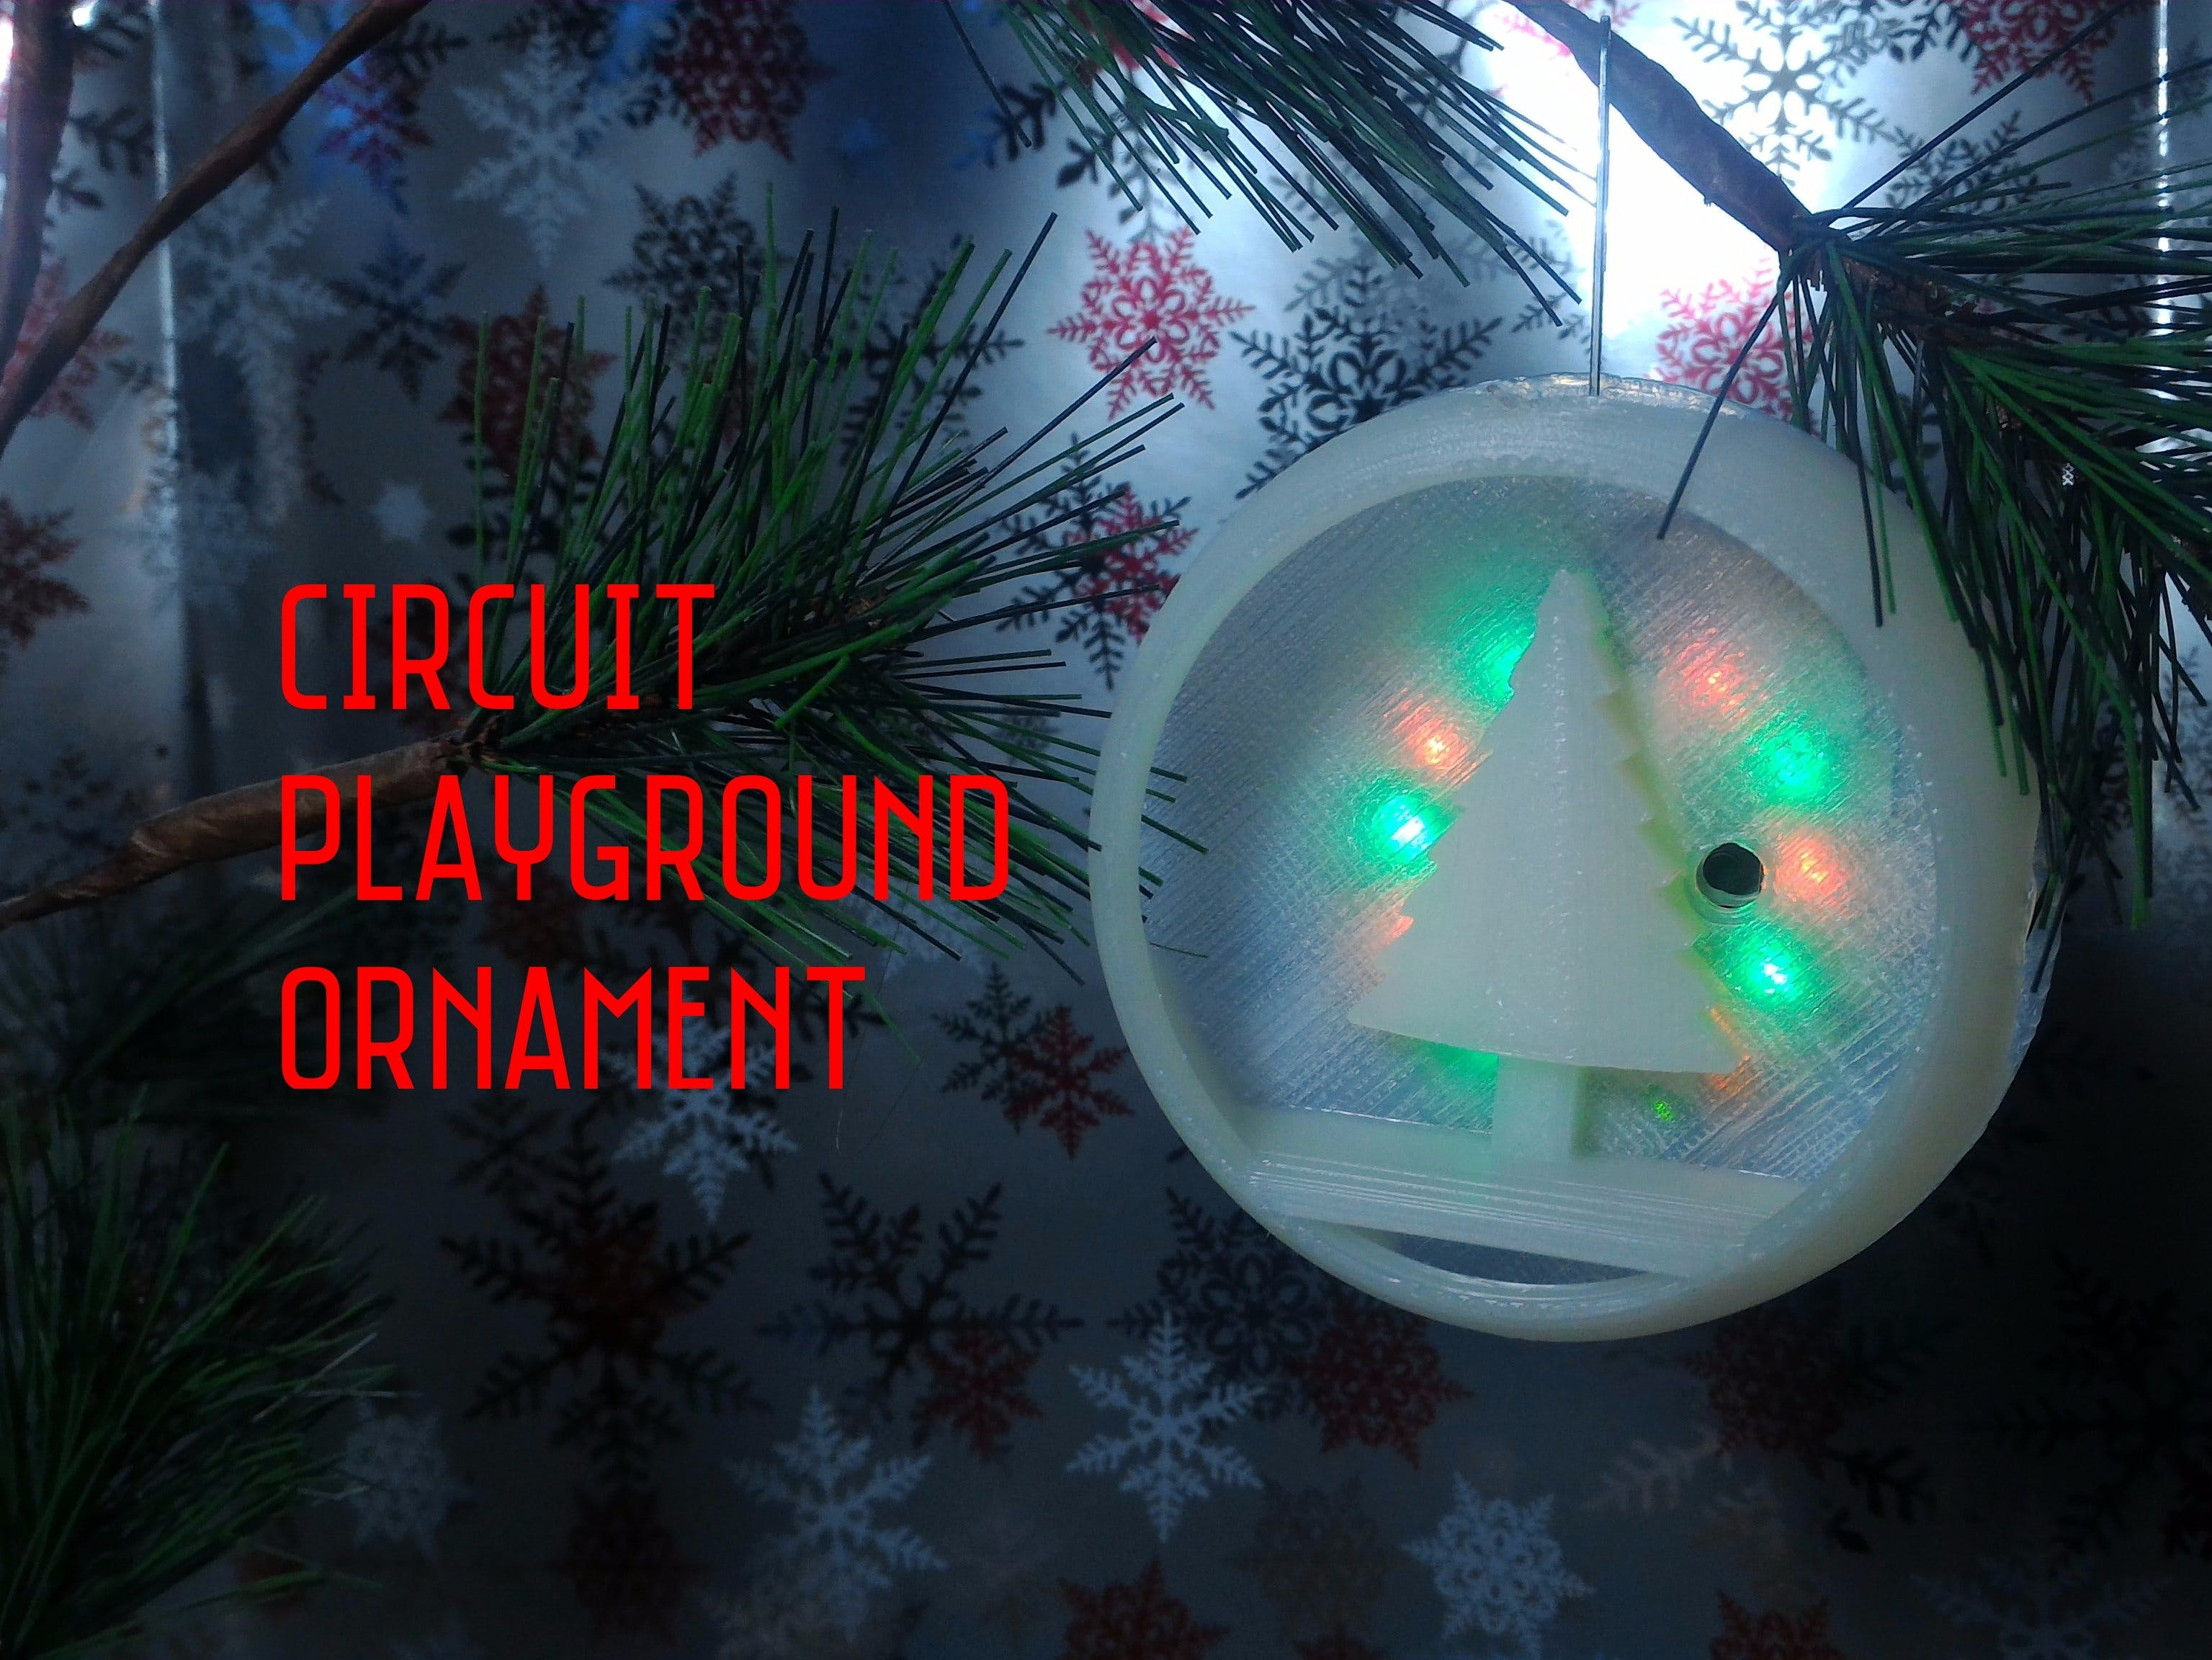 Circuit Playground Ornament